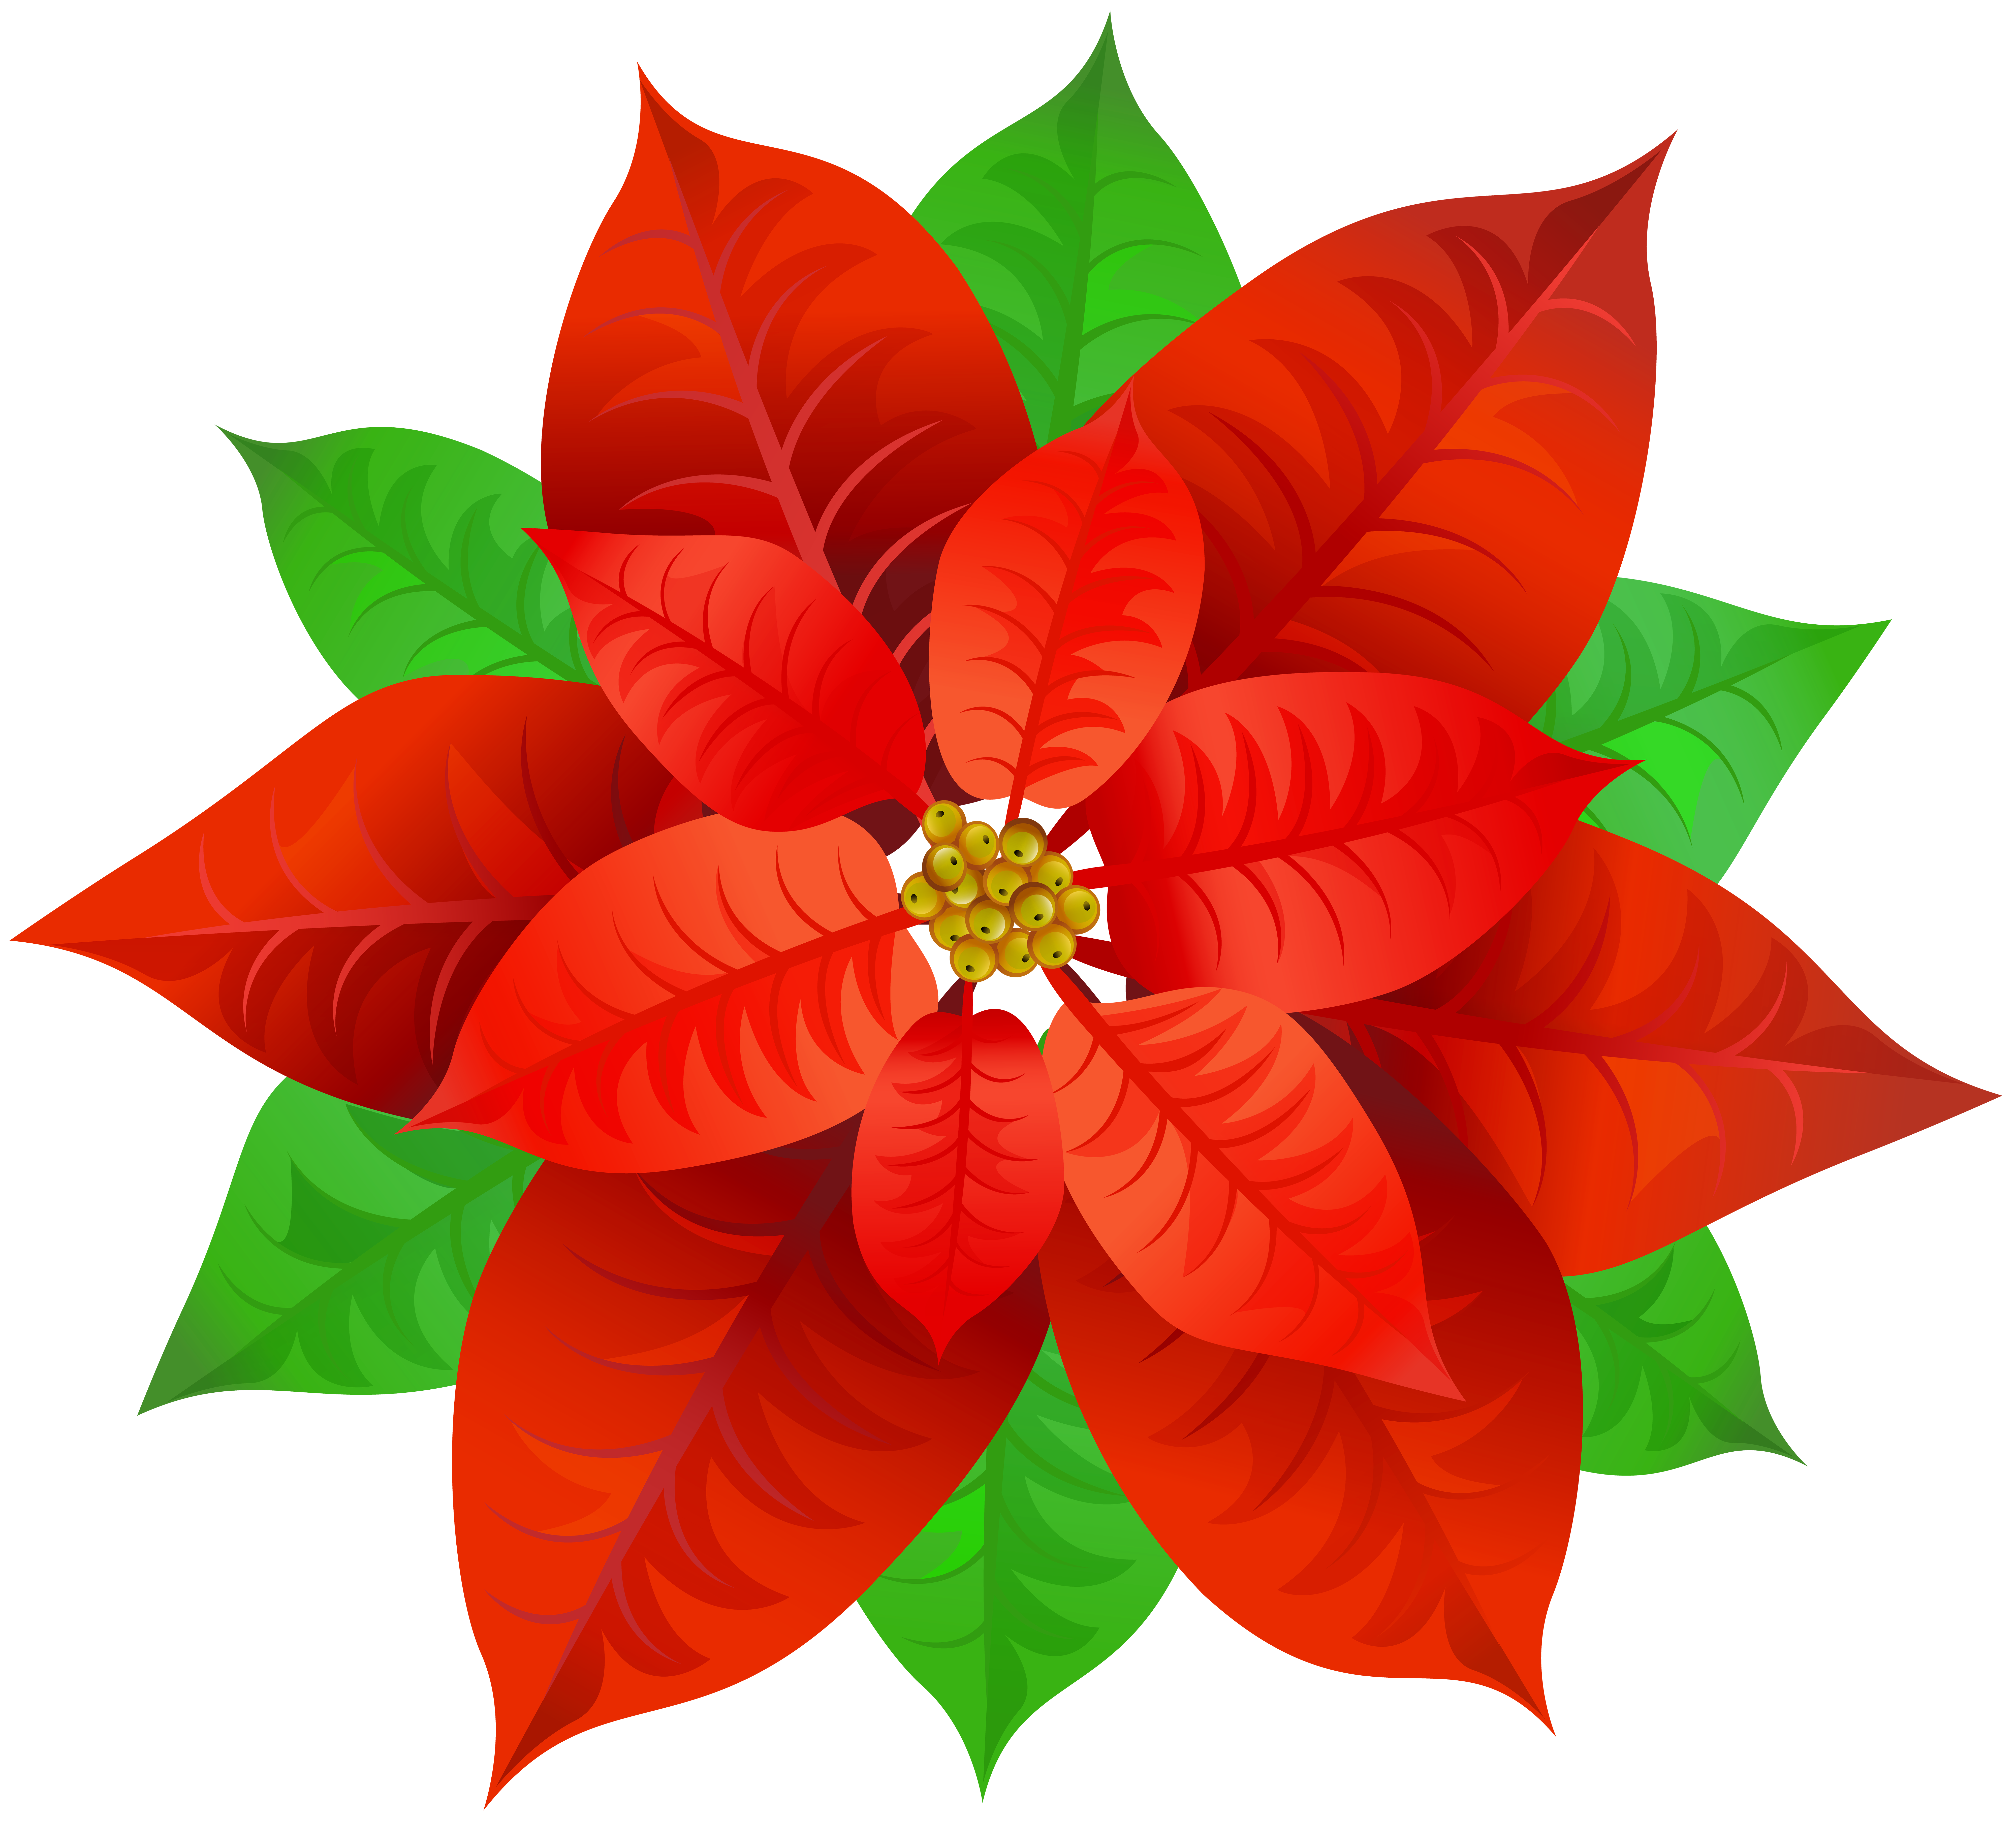 Poinsettia transparent. Png image gallery yopriceville vector